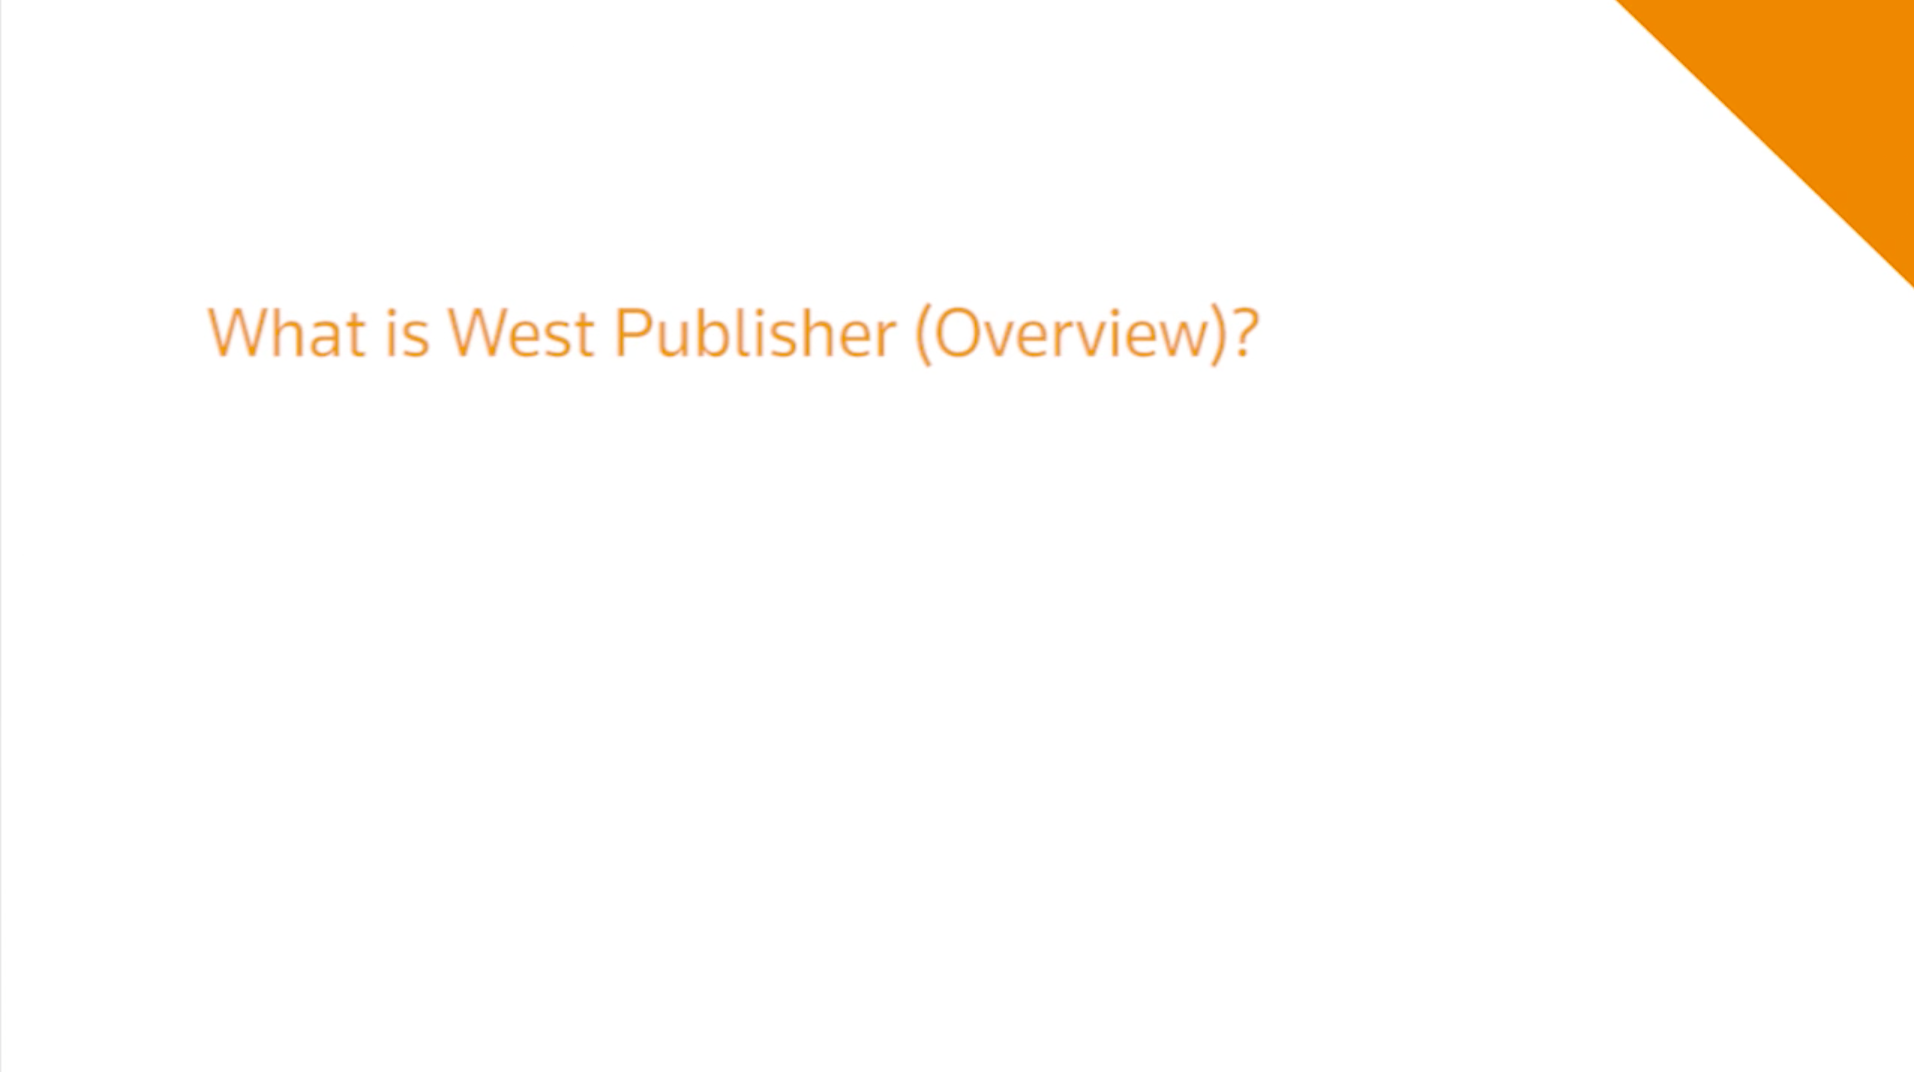 What is West Publisher?